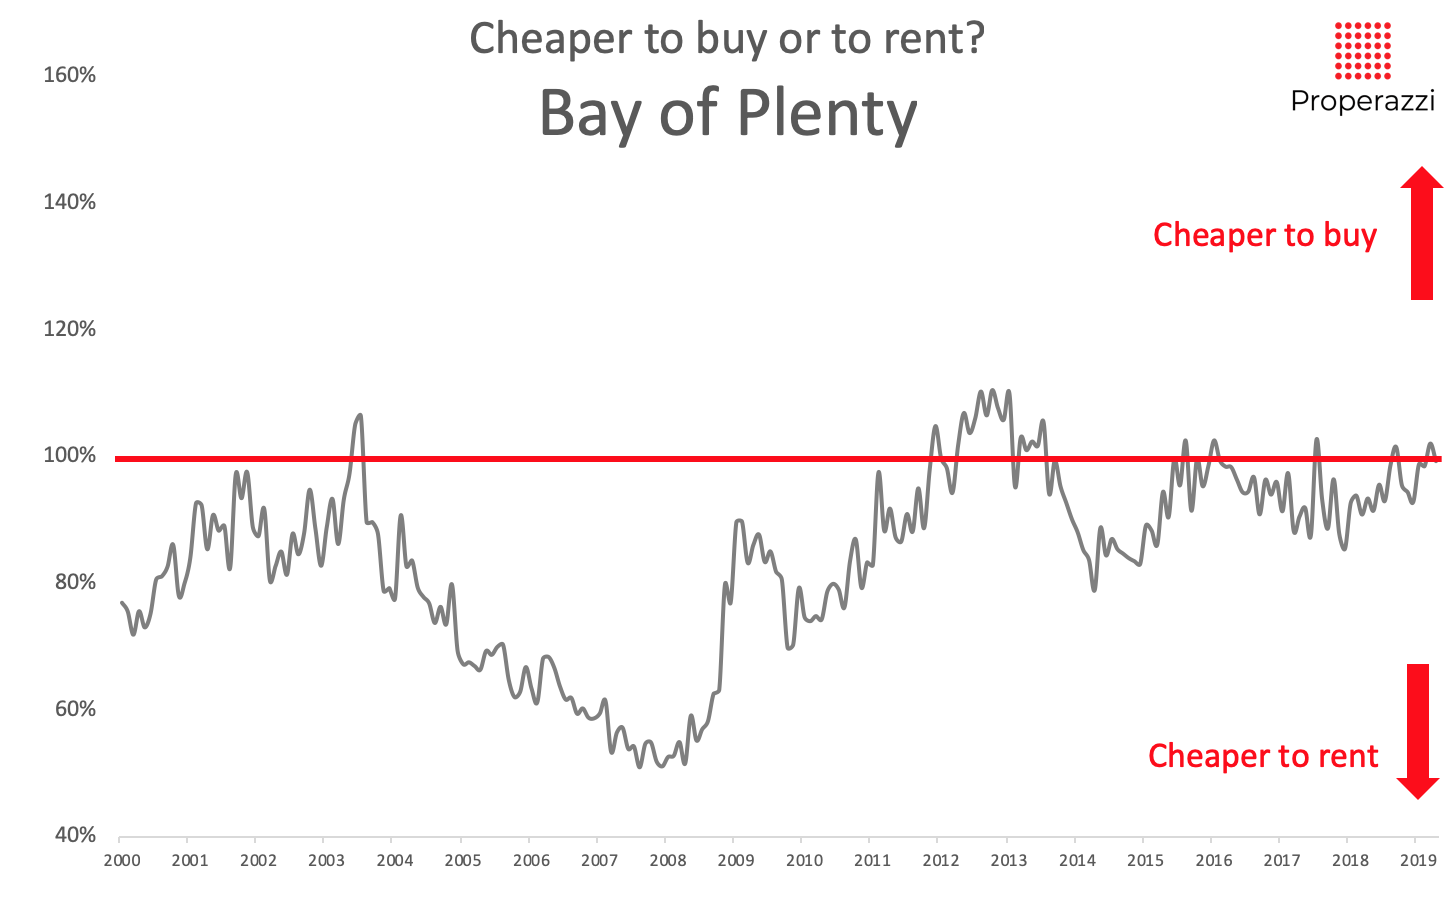 To rent or to buy - Bay of Plenty May 2019